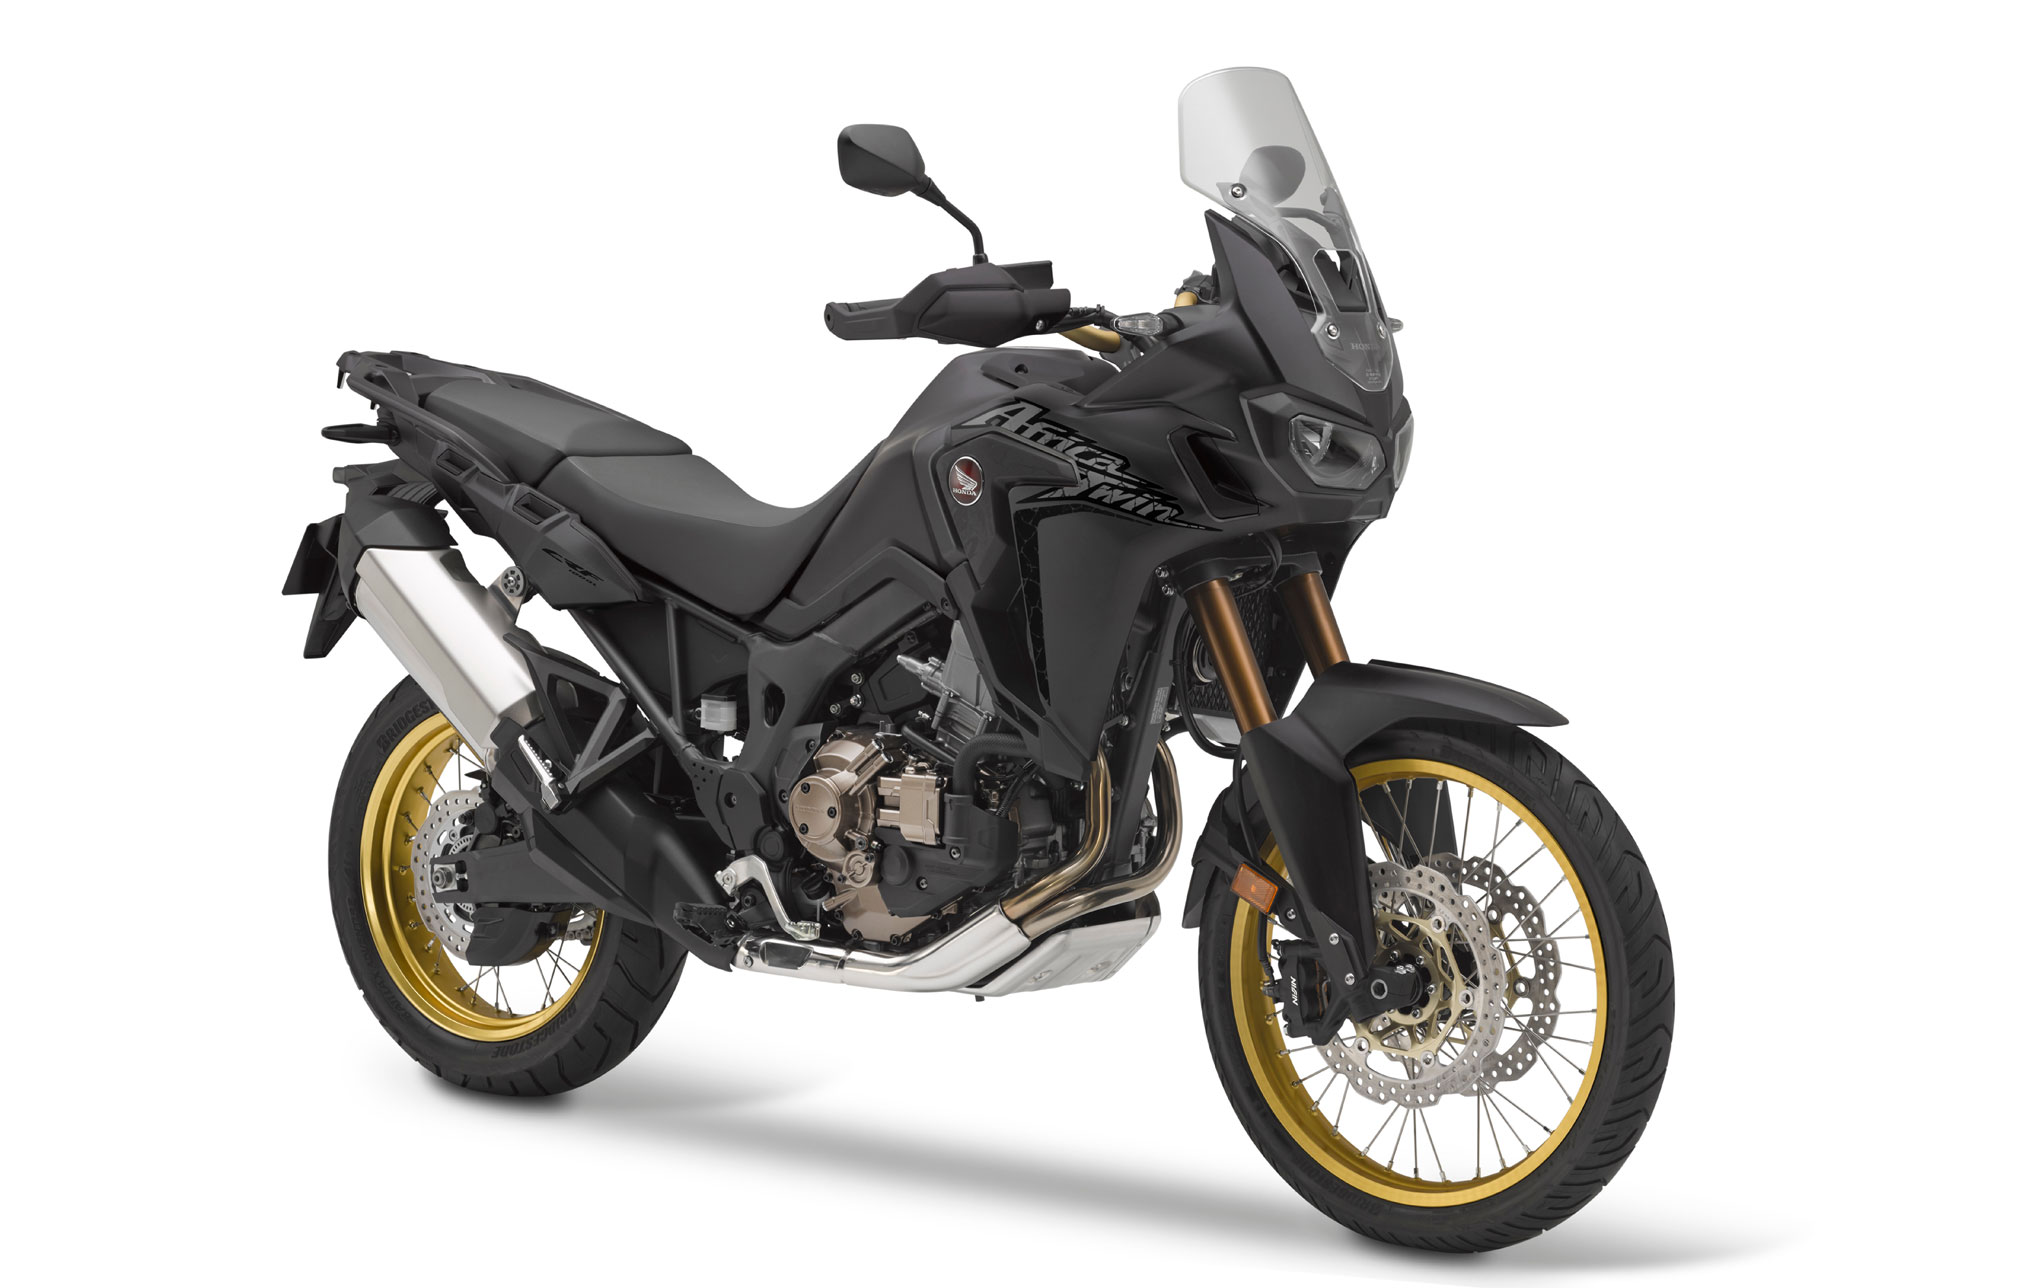 2019 honda africa twin dct guide total motorcycle. Black Bedroom Furniture Sets. Home Design Ideas